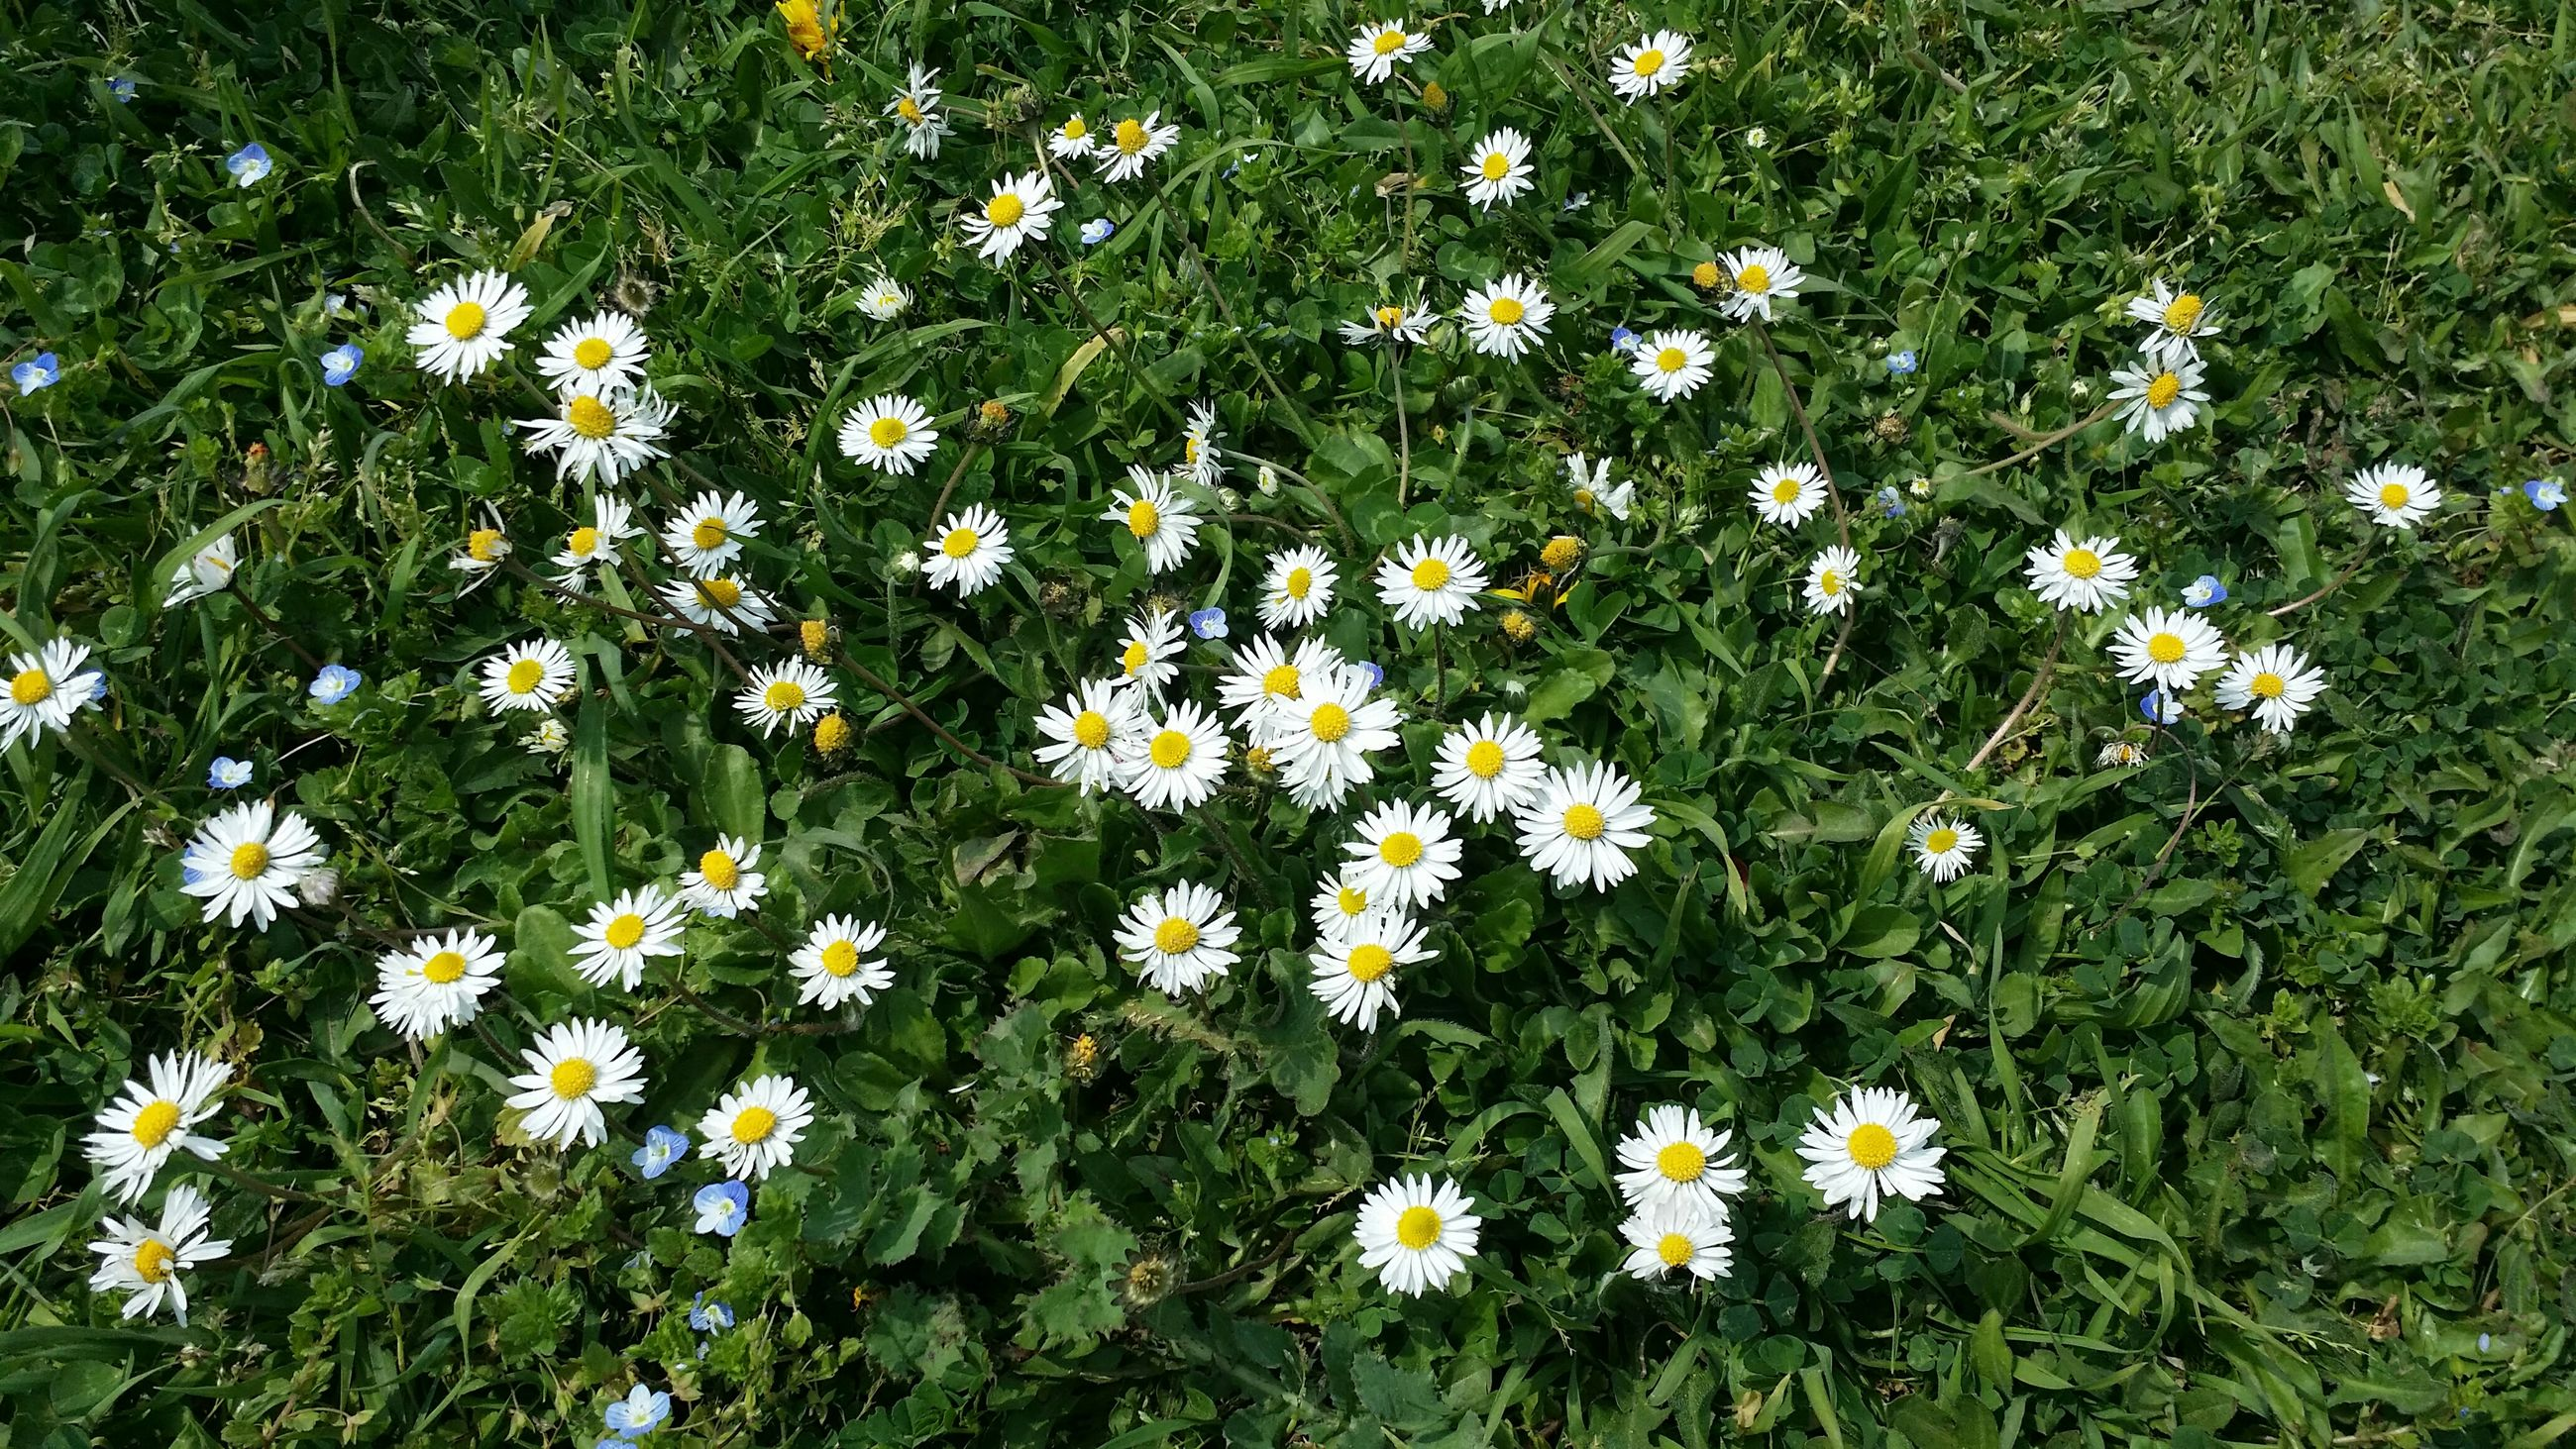 flower, freshness, growth, fragility, daisy, beauty in nature, white color, petal, field, nature, plant, blooming, grass, high angle view, flower head, wildflower, green color, meadow, in bloom, yellow